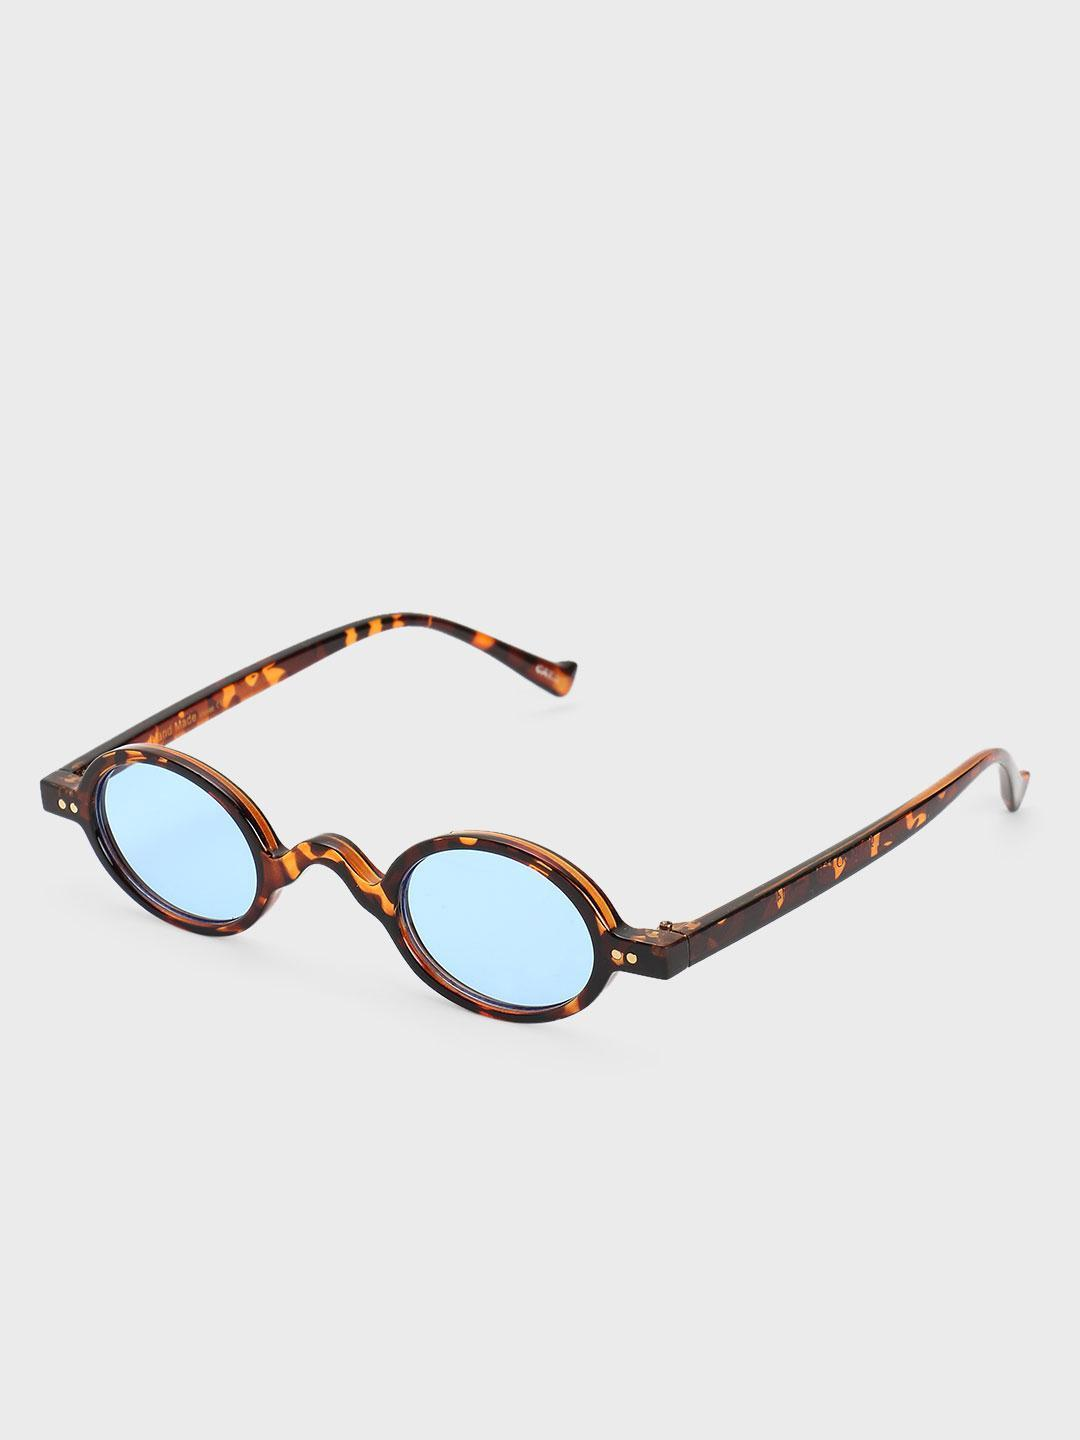 Pataaka Blue Textured Frame Round Sunglasses 1